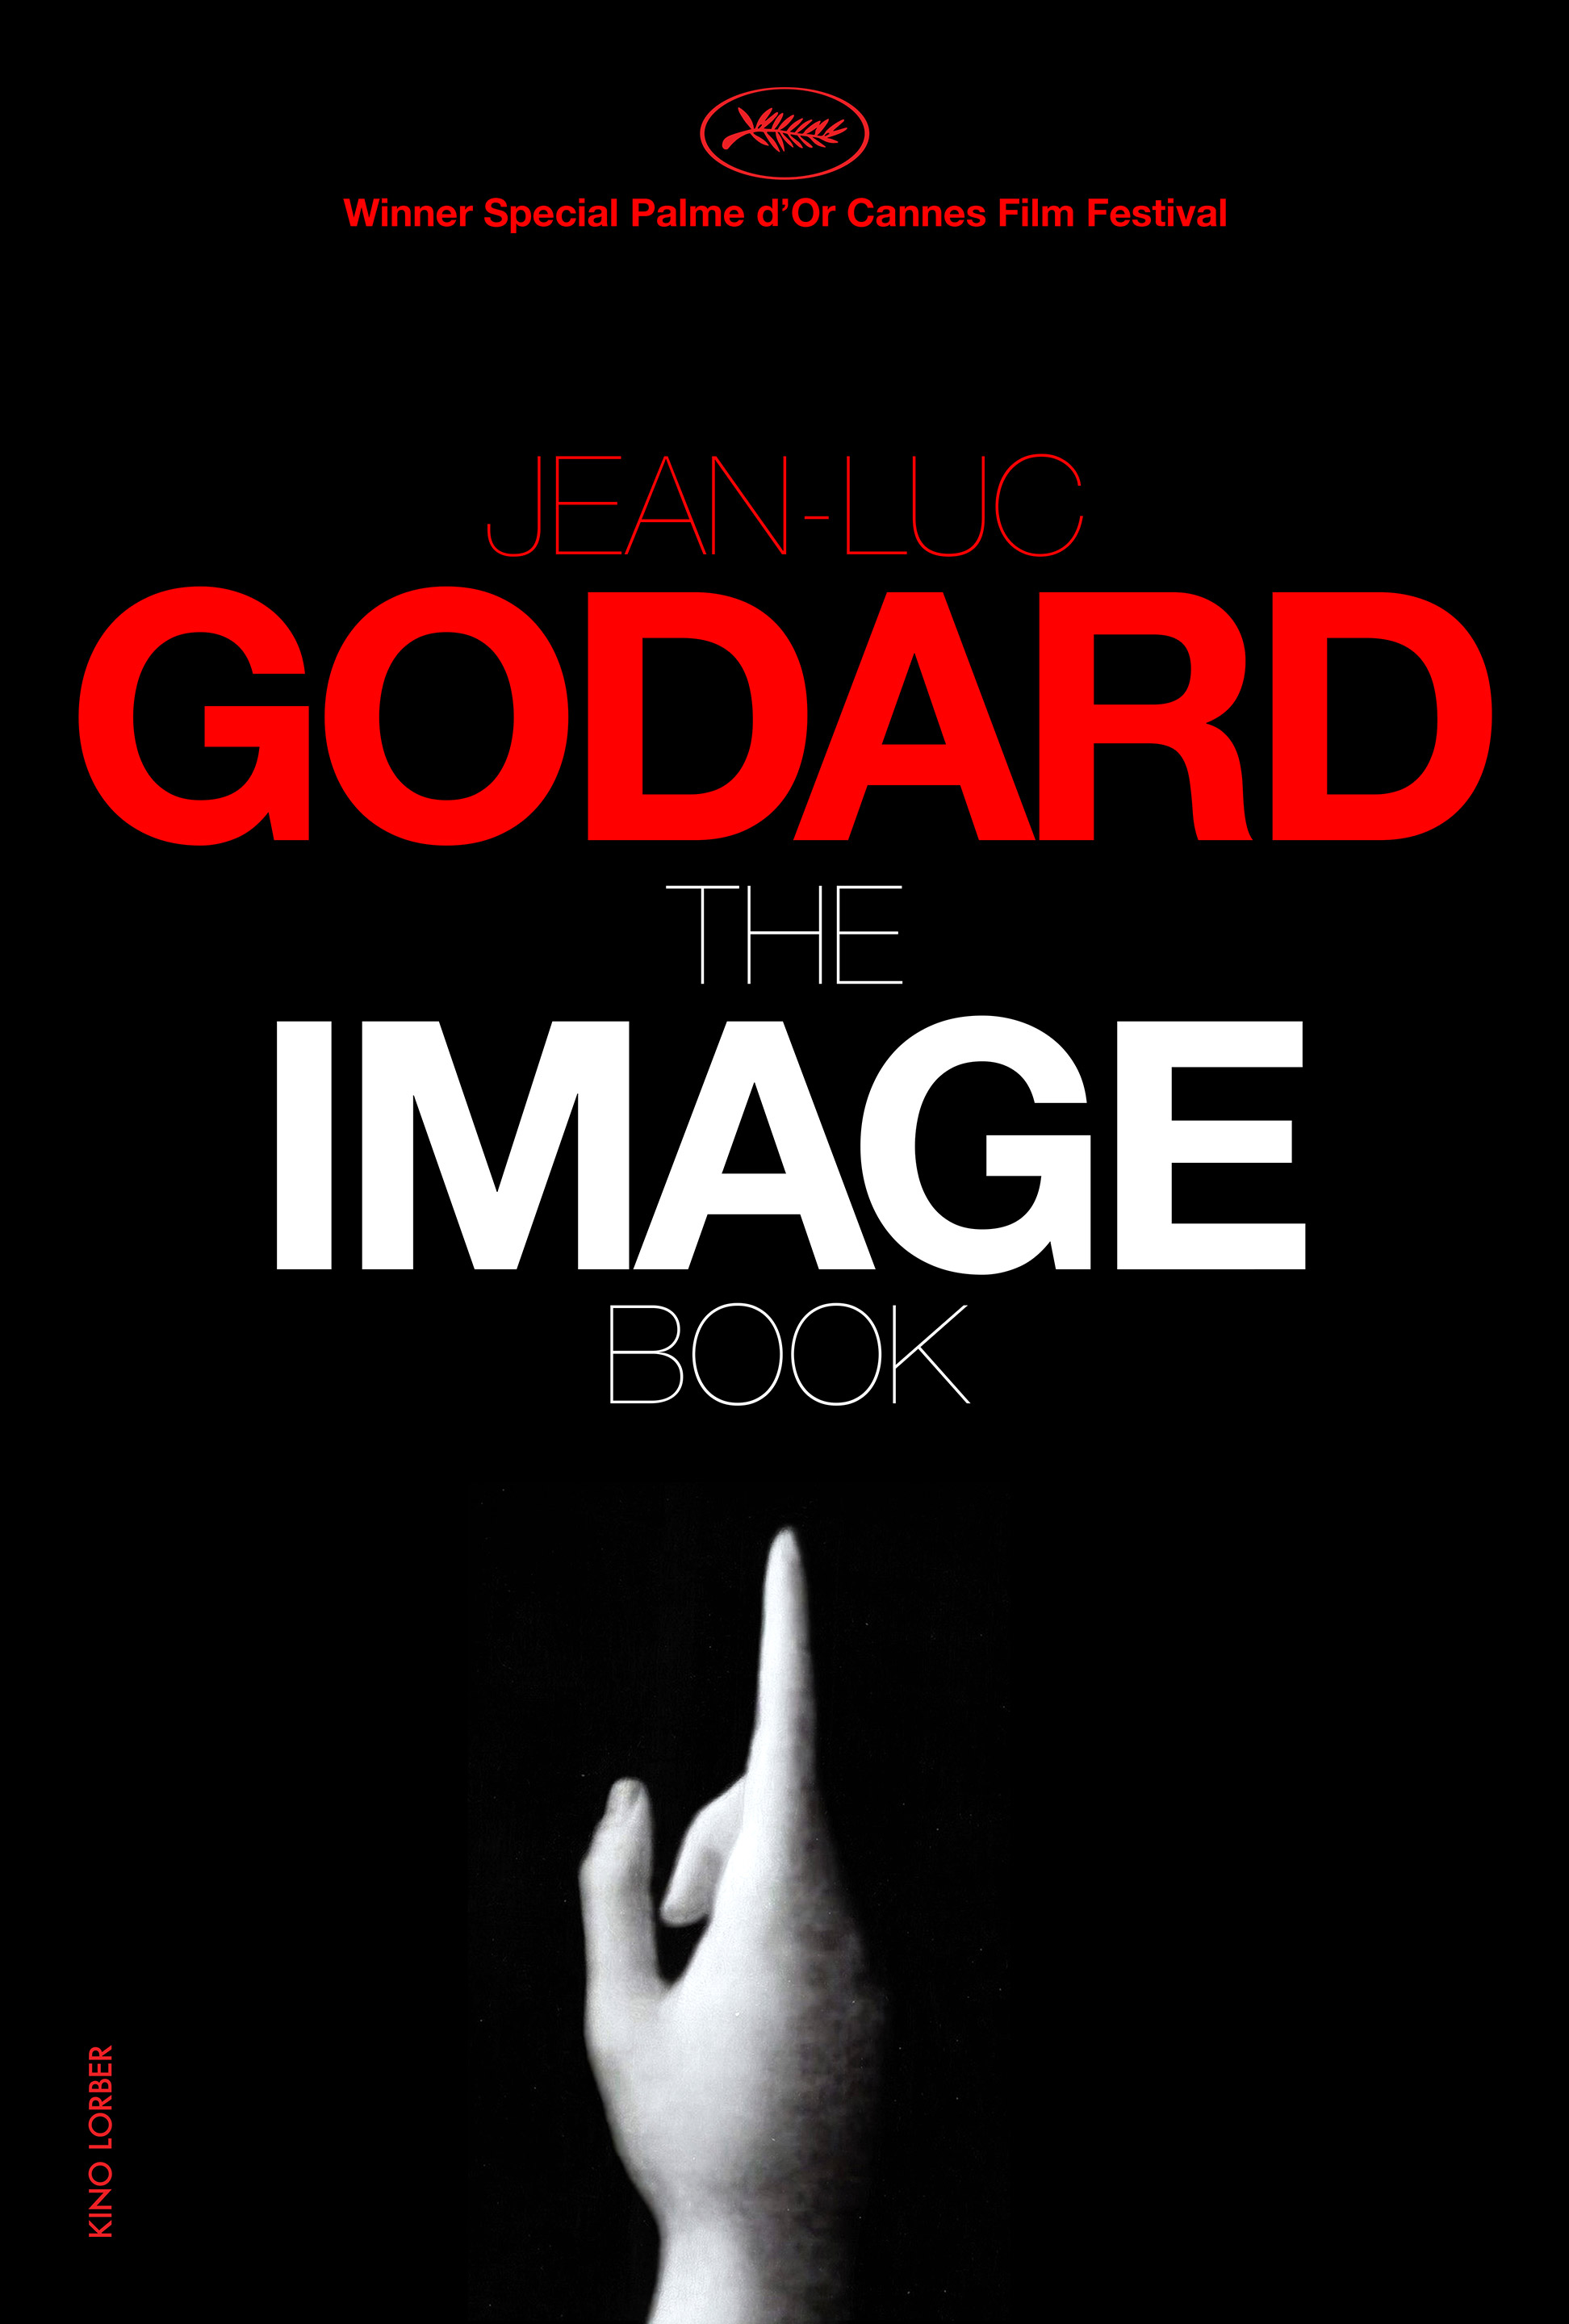 Image result for Image book, The Switzerland|France | French,English, Arabic,Italian | Jean luc godard